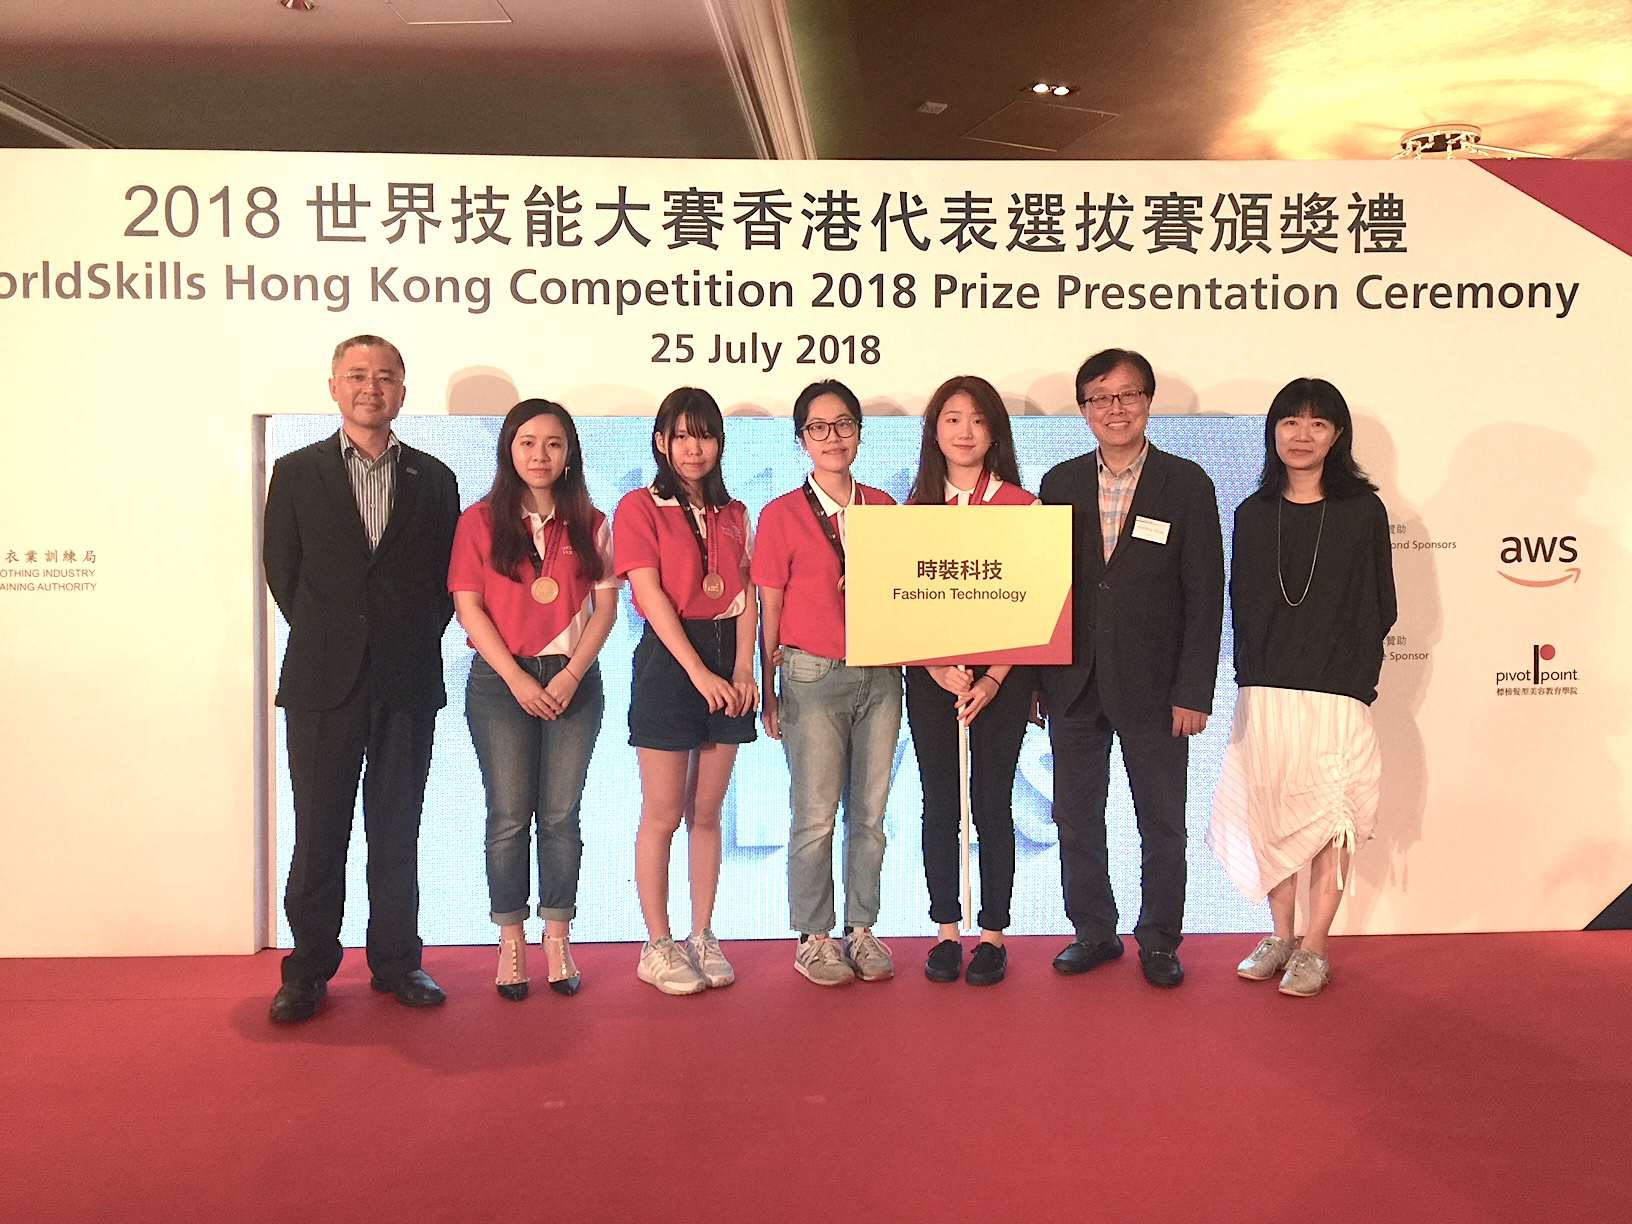 WorldSkills Hong Kong Competition 2018 Prize Presentation Ceremony